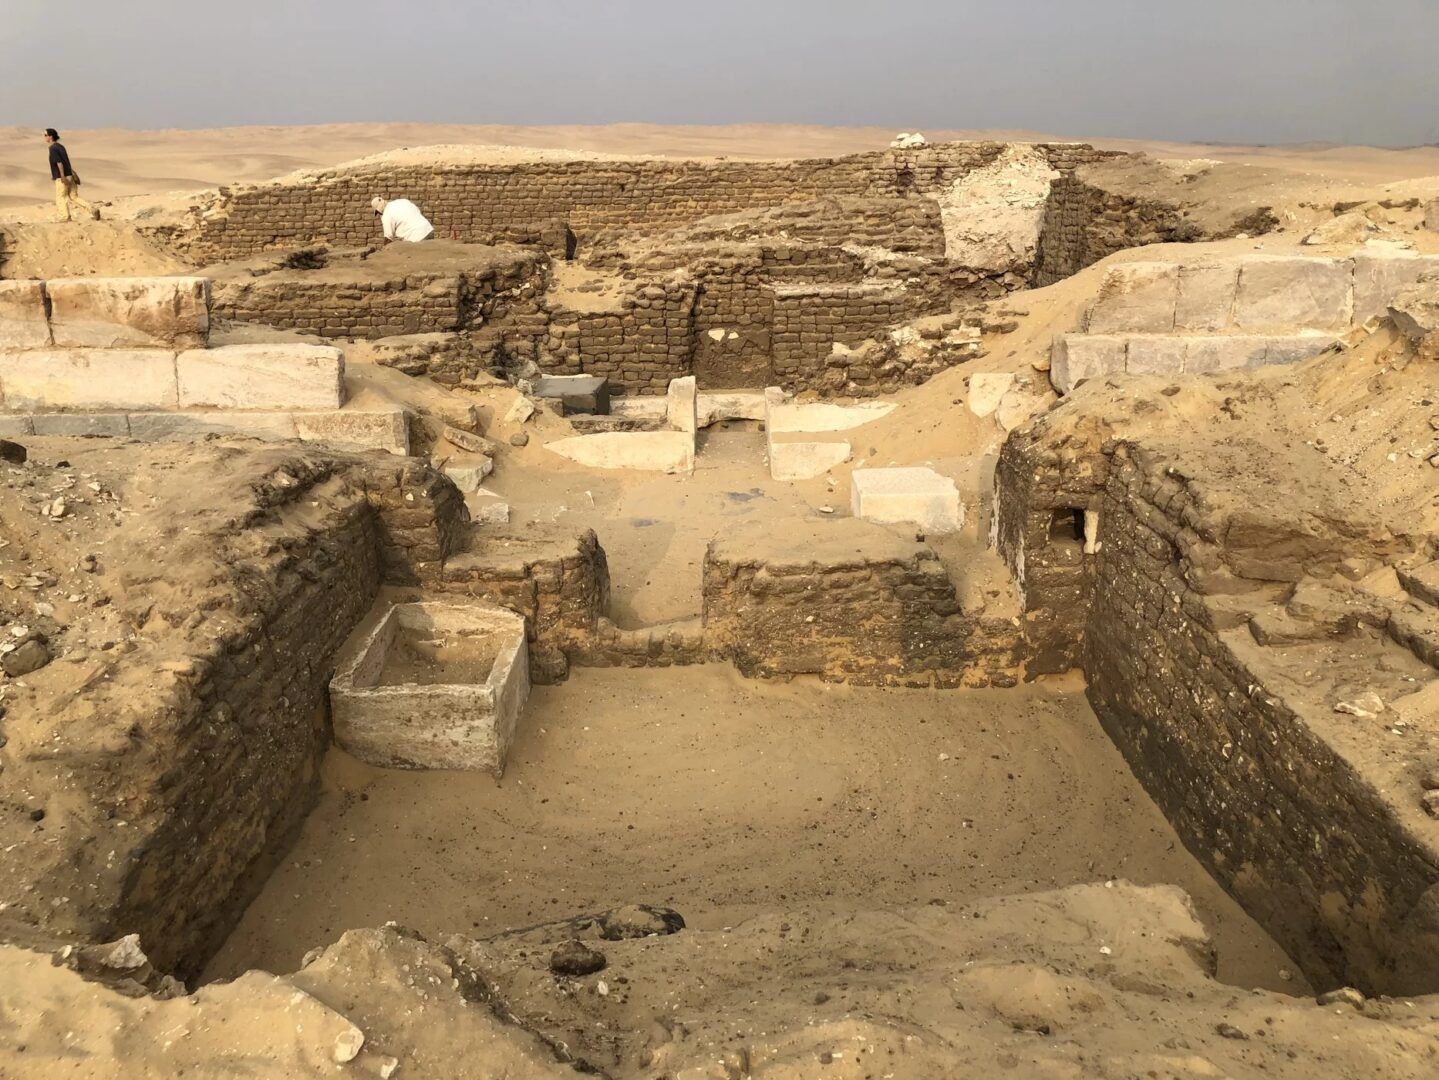 Saqqara, o local que guarda diversos segredos e tesouros do Egito